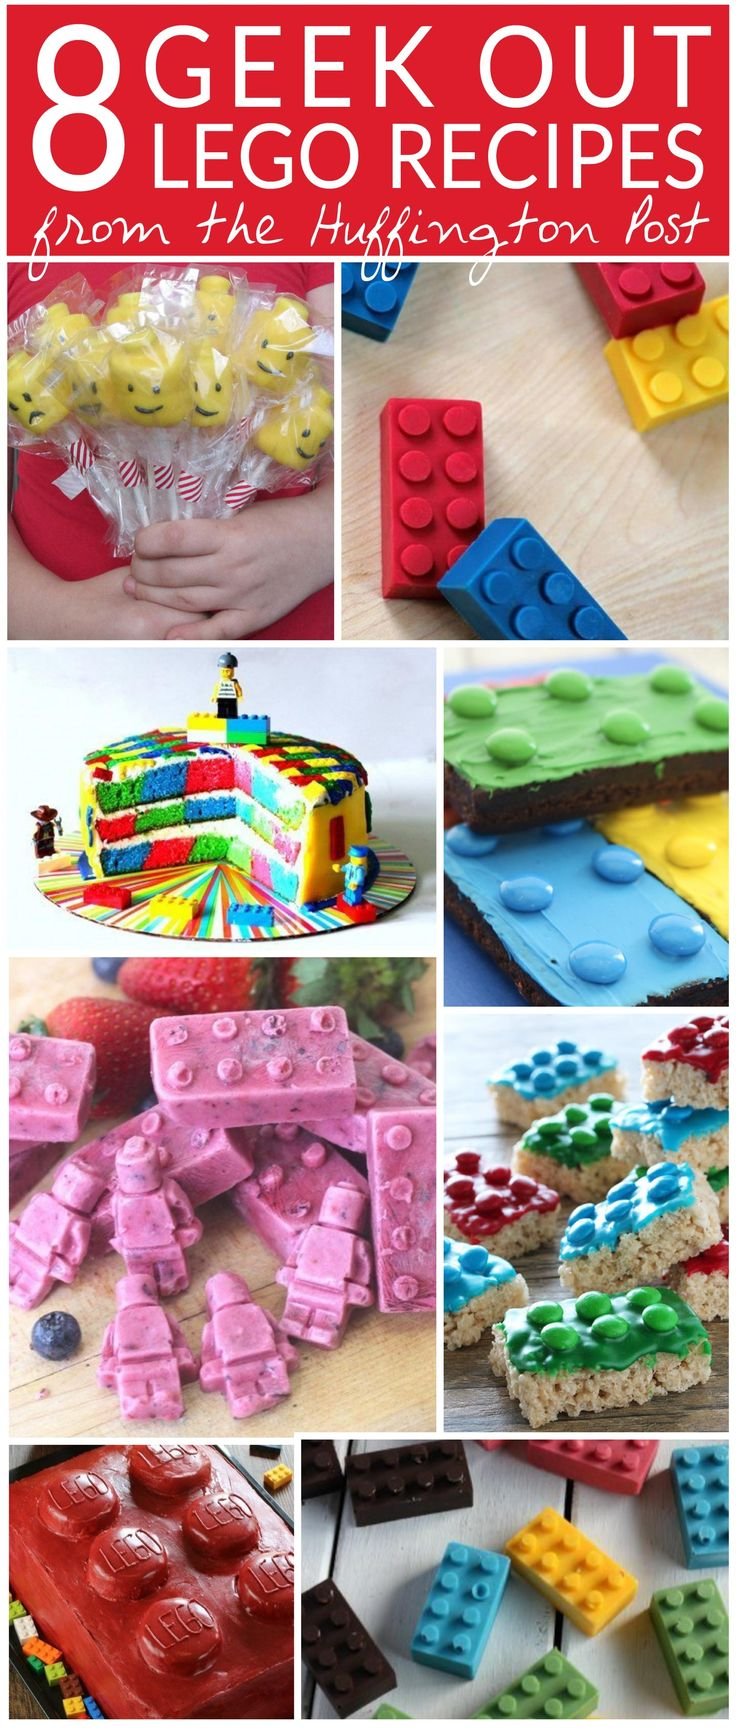 8 Geek out LEGO Recipes in the Group Board LEGO® LOVE http://www.pinterest.com/yourfrenchtouch/lego-love - If you ♥ LEGO®, come and have a look at the crowdest LEGO® LOVE group board http://www.pinterest.com/yourfrenchtouch/lego-love #LEGO